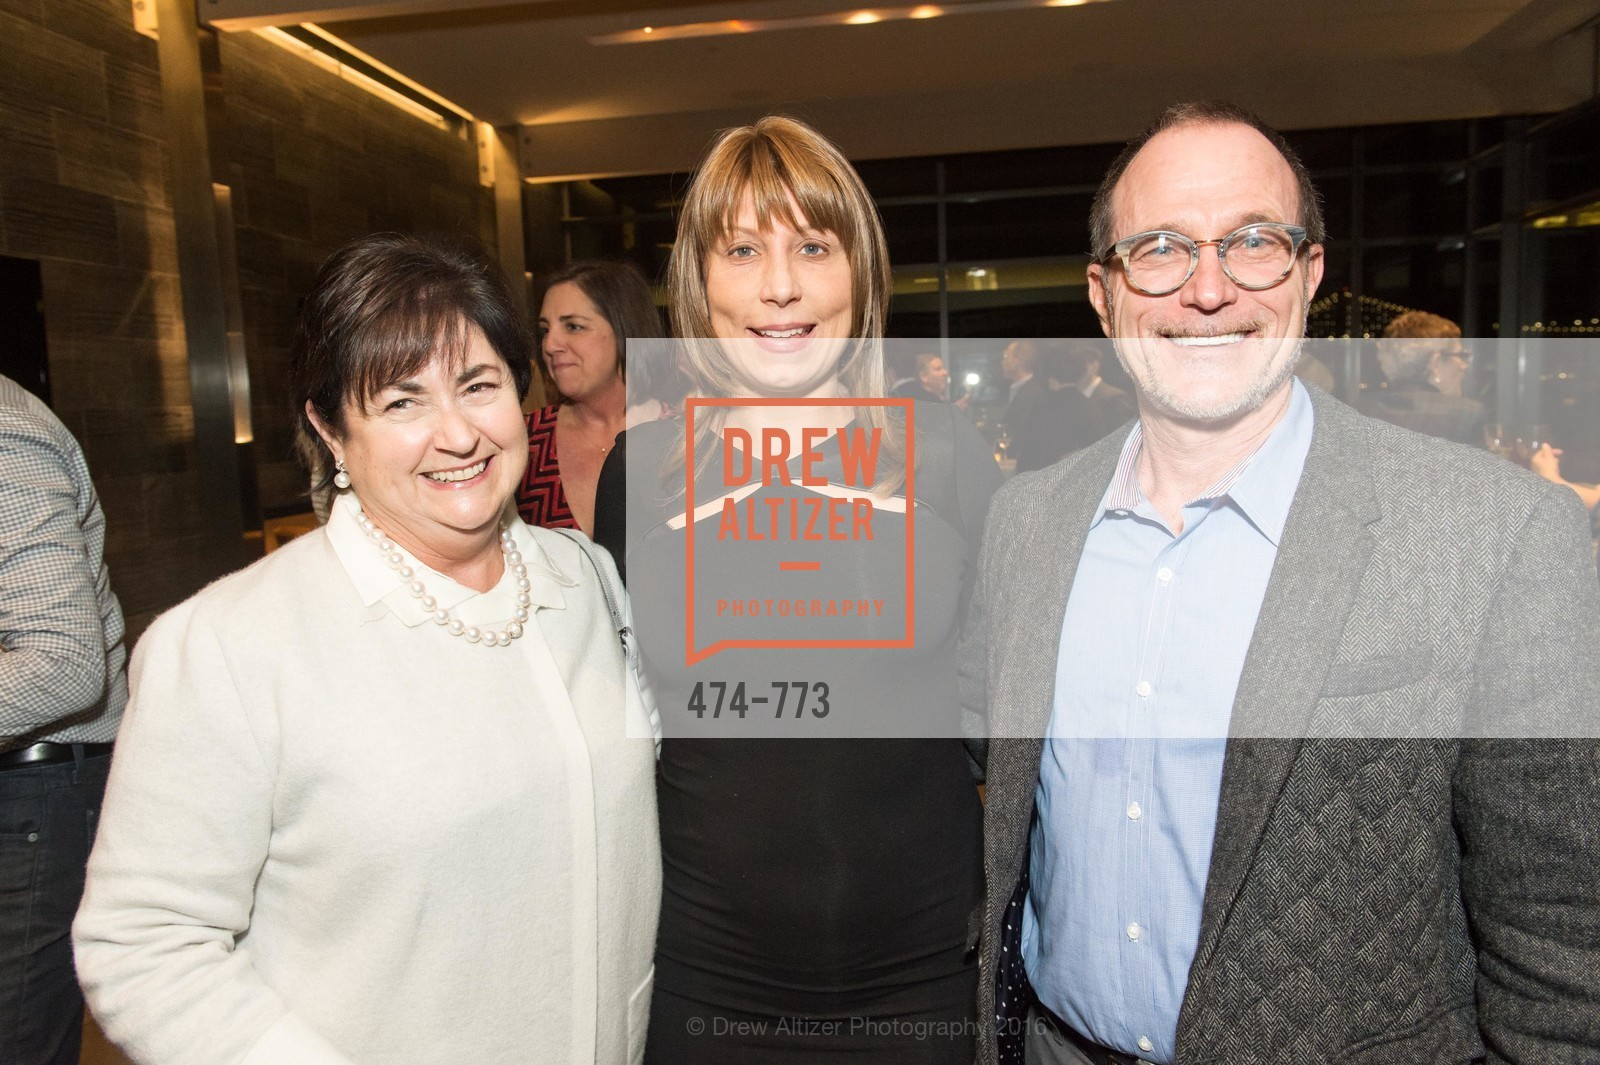 Janet Schindler, Amanda Jones, Brad Smith, Sotheby's International Realty's Celebrates the New Year, The Battery, Penthouse. 717 Battery St, January 27th, 2016,Drew Altizer, Drew Altizer Photography, full-service agency, private events, San Francisco photographer, photographer california